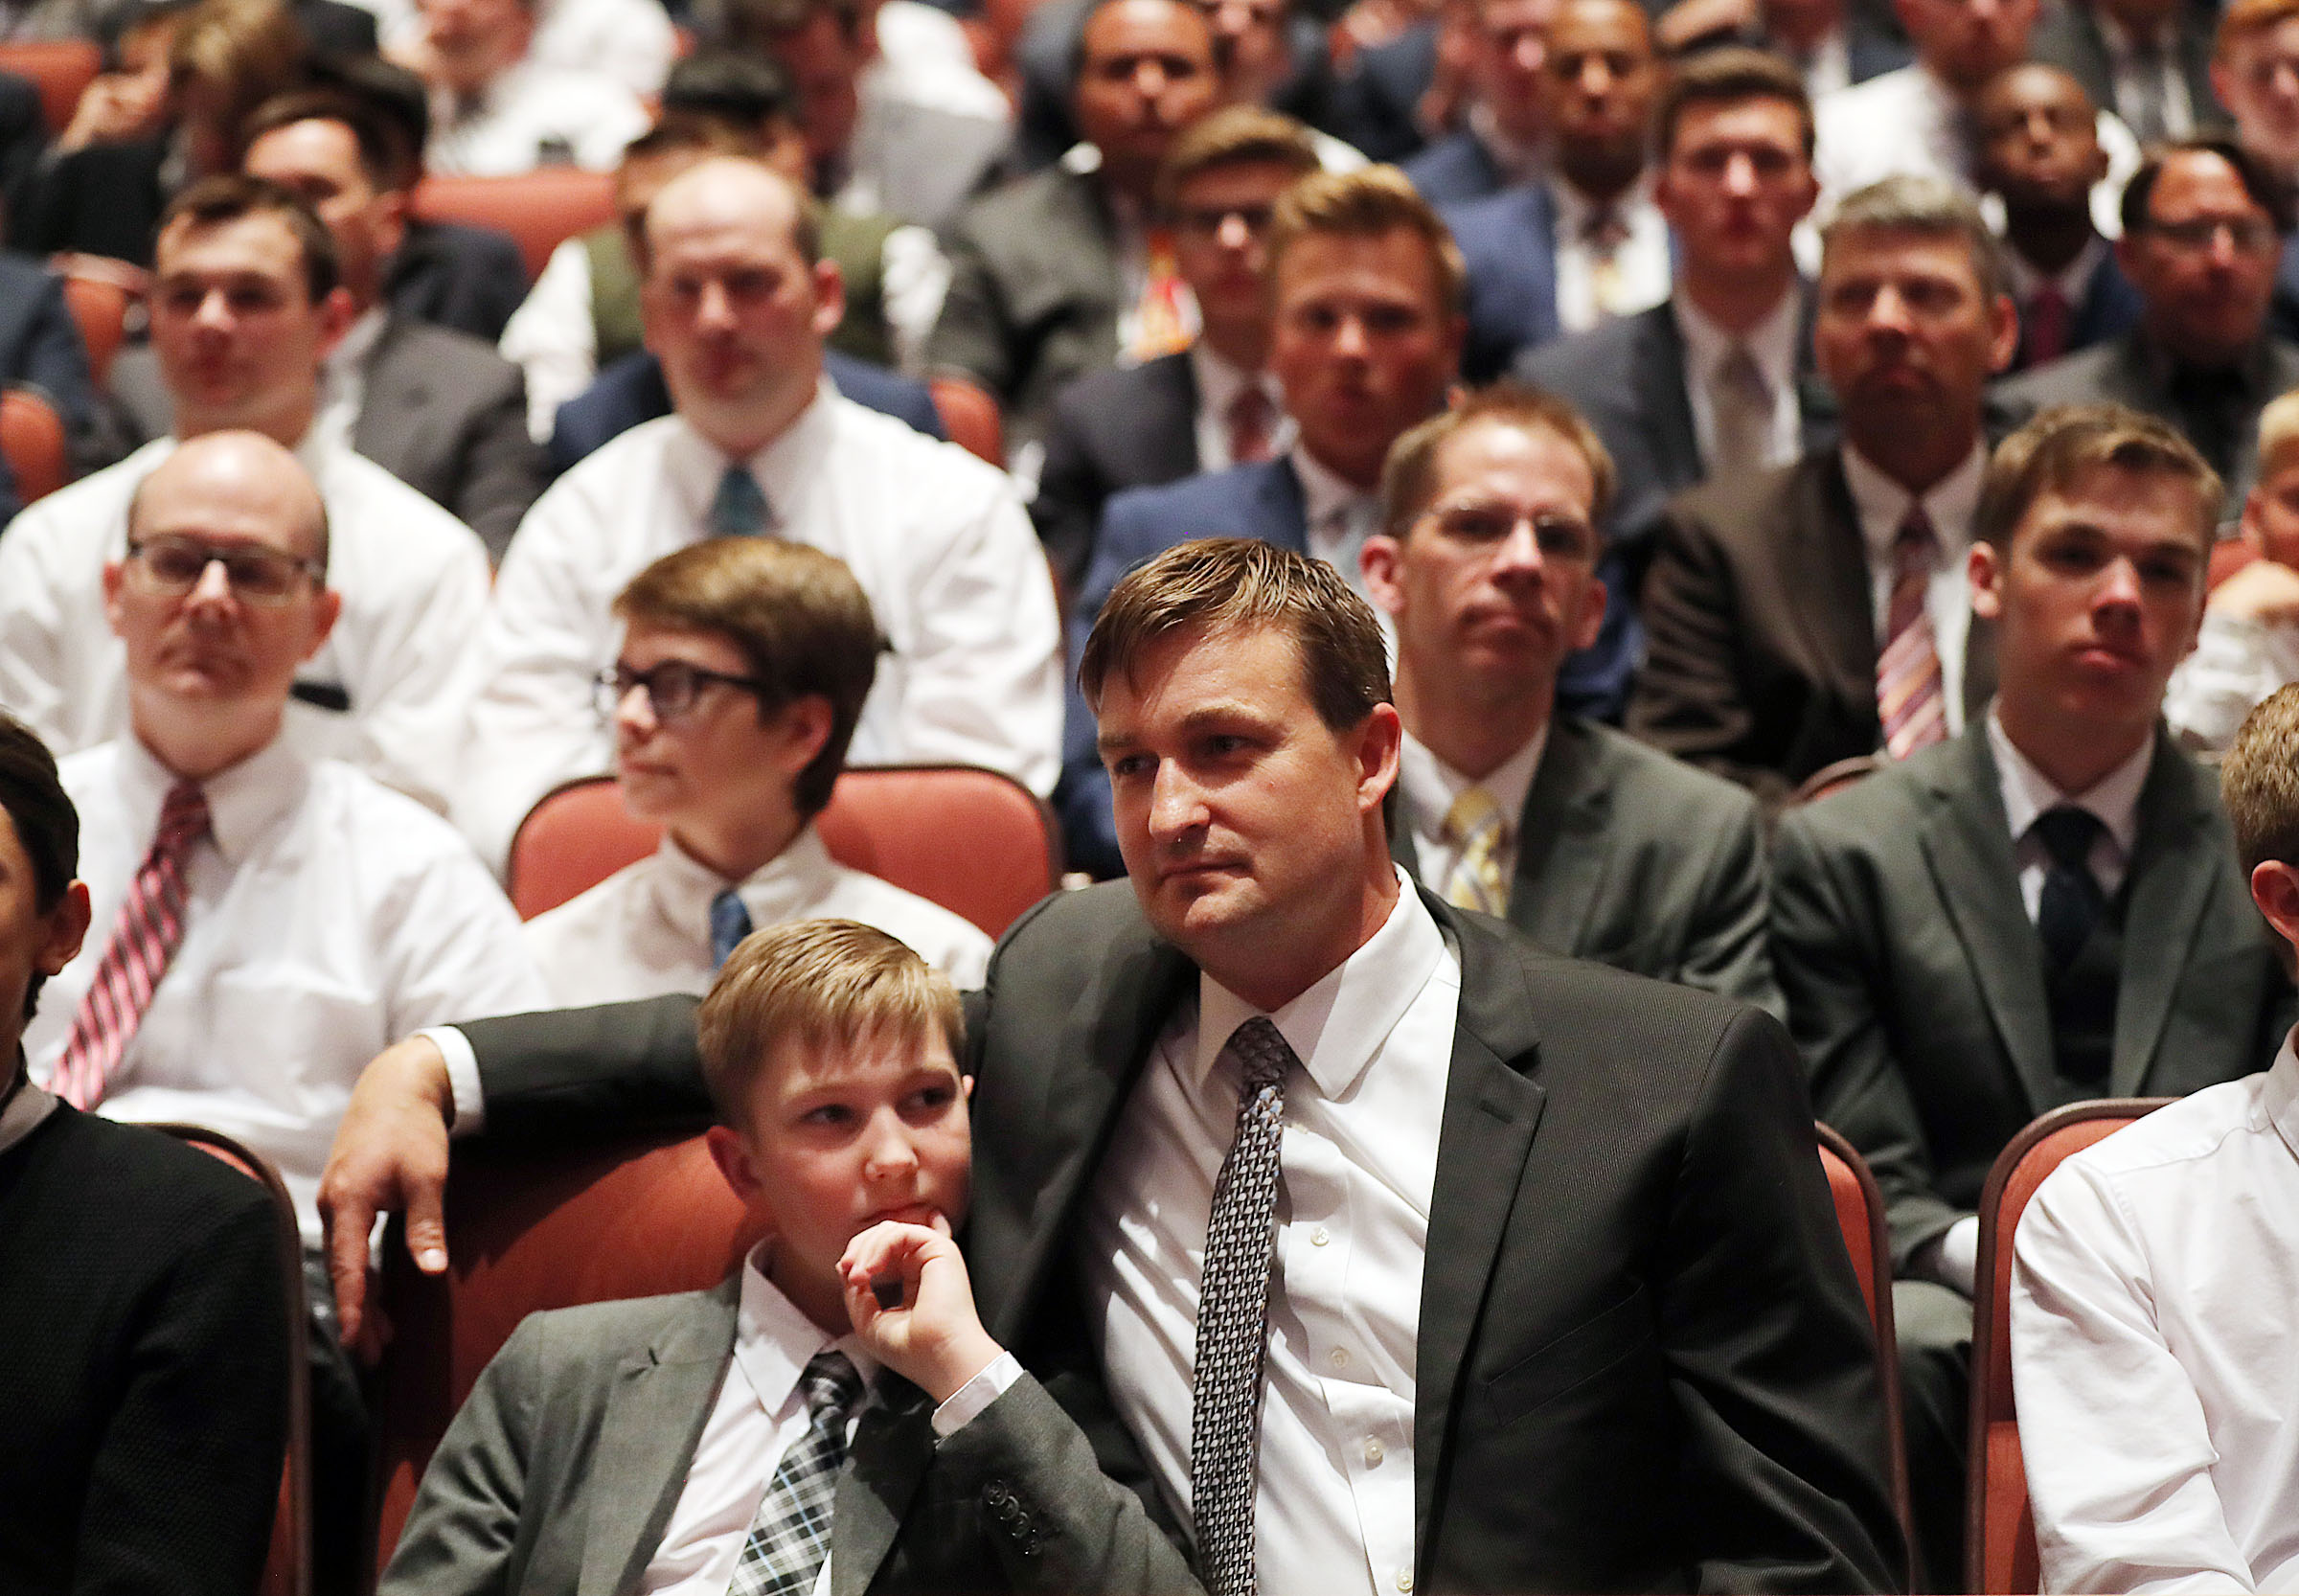 Scott Johnson and his son, Charles, of Denton, Texas, listen during the priesthood session of the 189th Annual General Conference of The Church of Jesus Christ of Latter-day Saints in the Conference Center in Salt Lake City on Saturday, April 6, 2019.